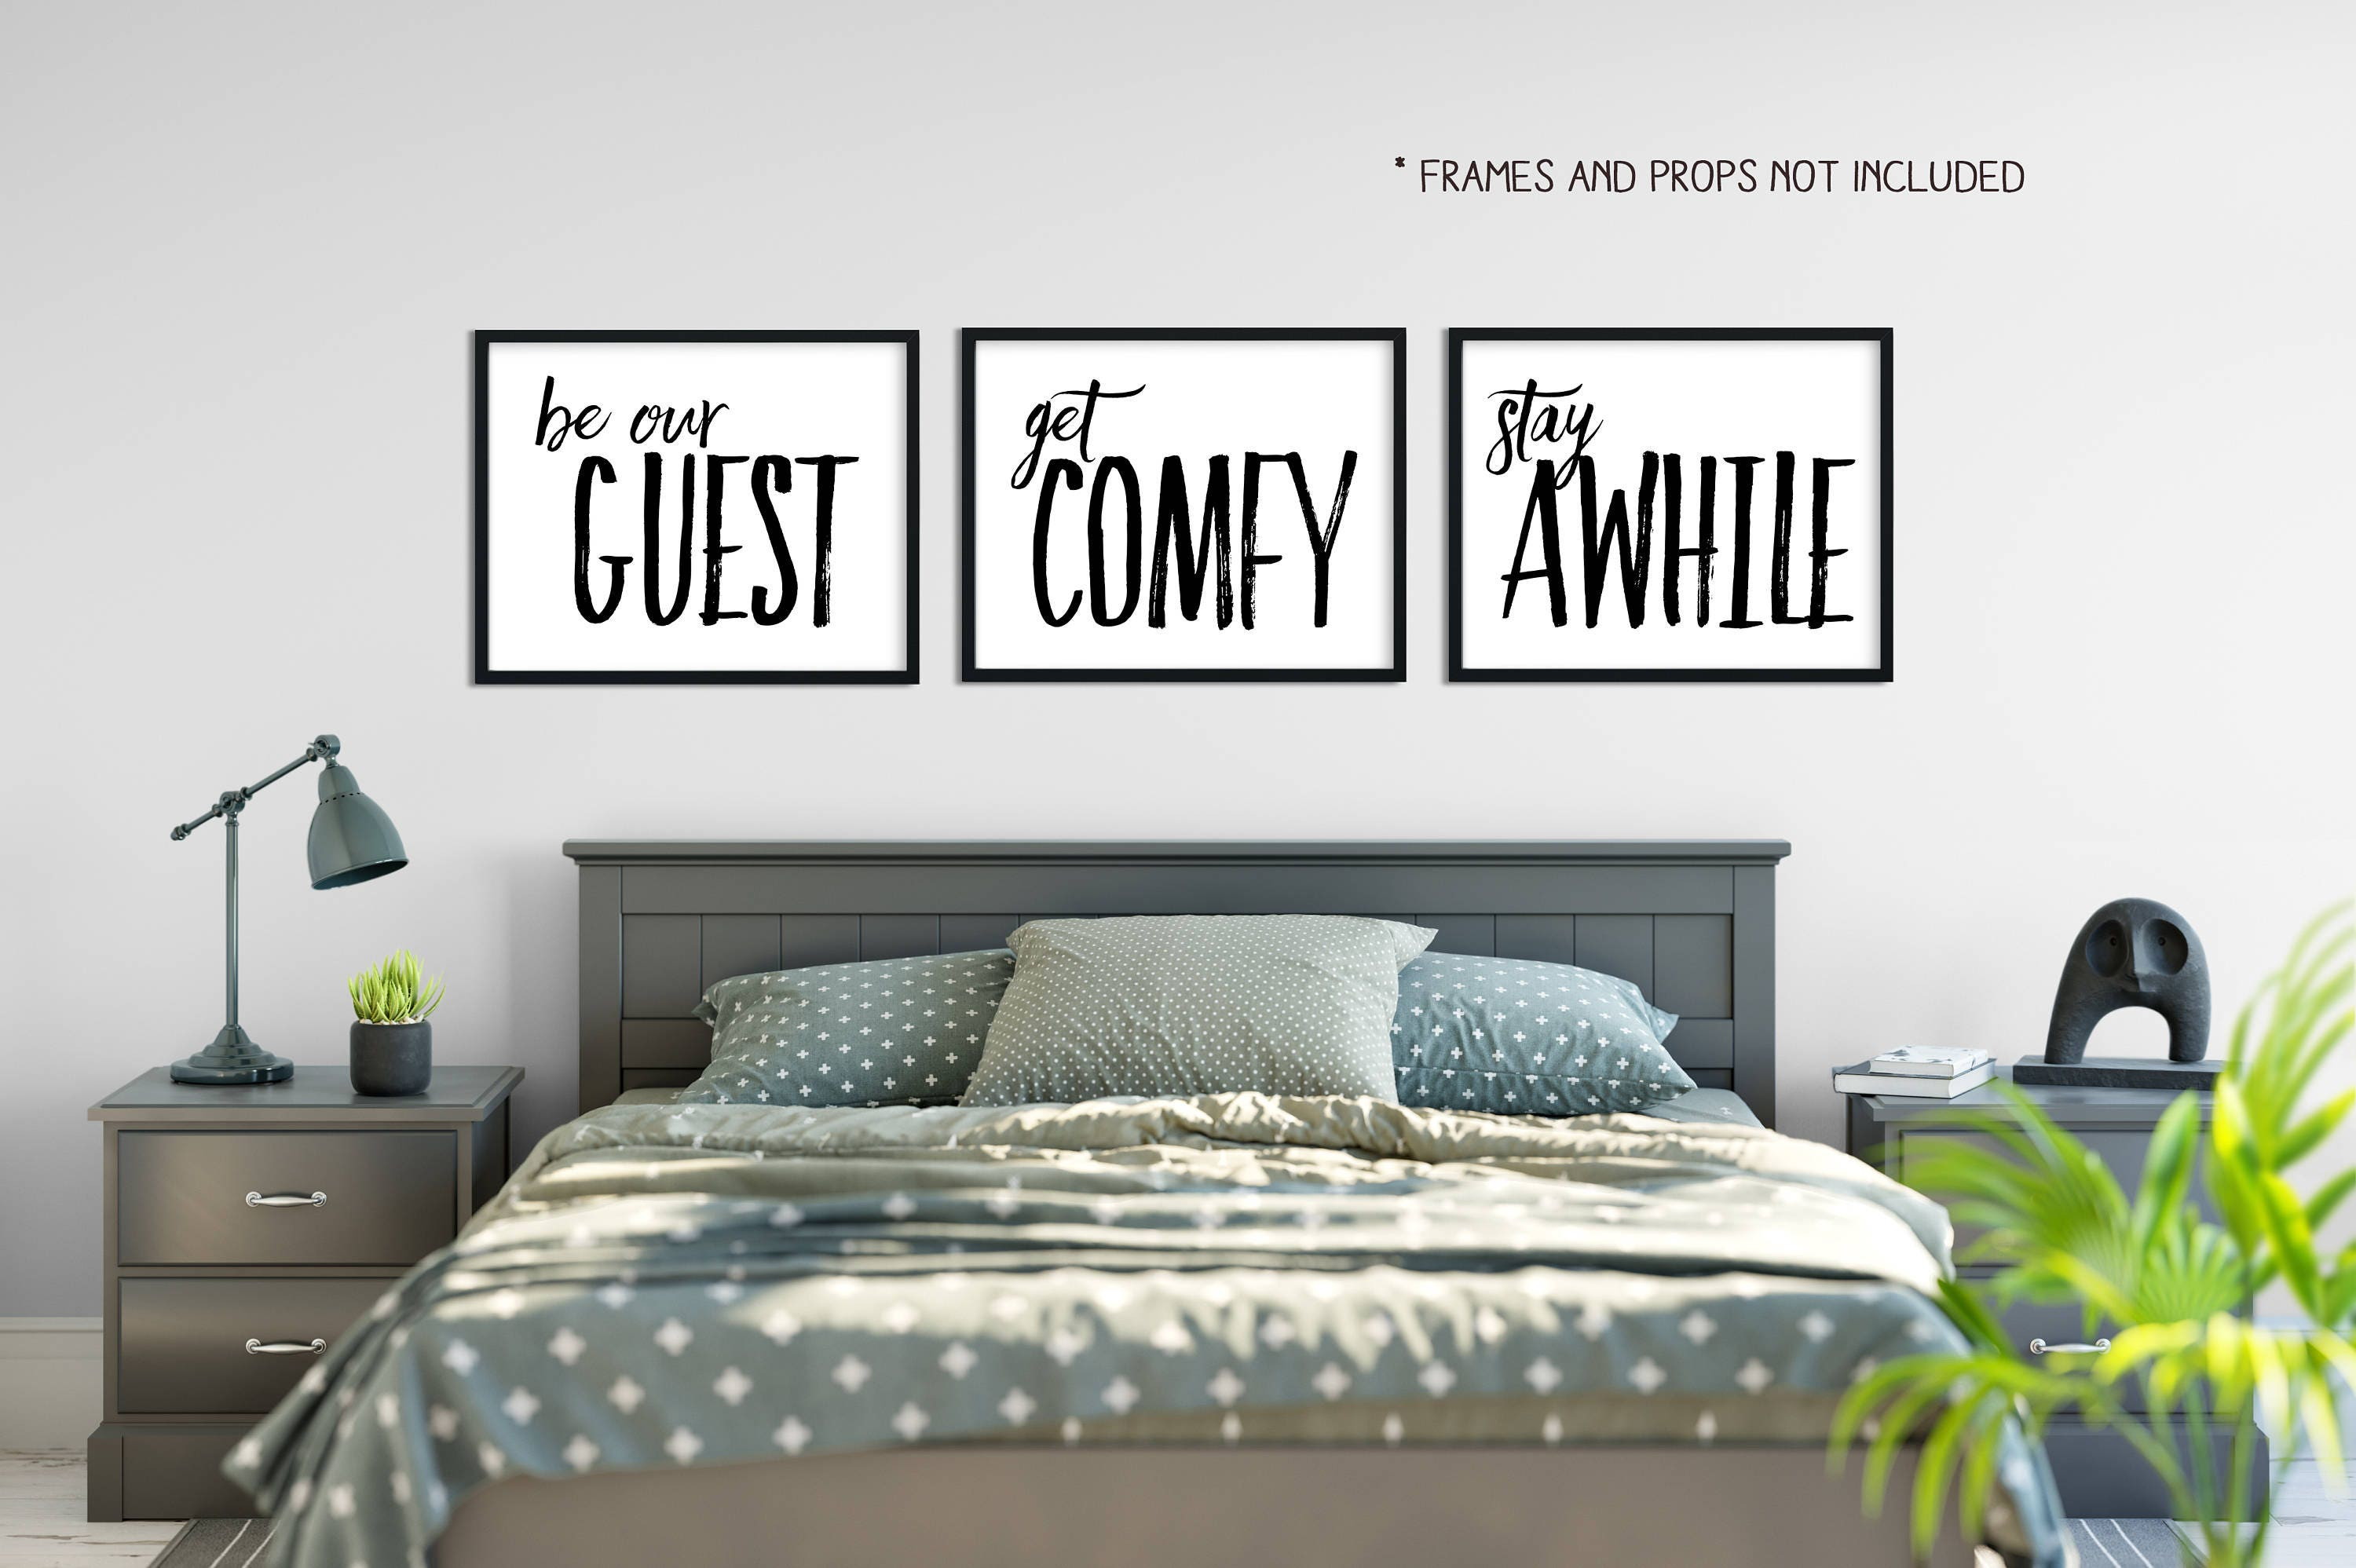 graphic regarding Be Our Guest Printable named Property Decor 16x20 - Wall Decor - Be Our Visitor - Order At ease